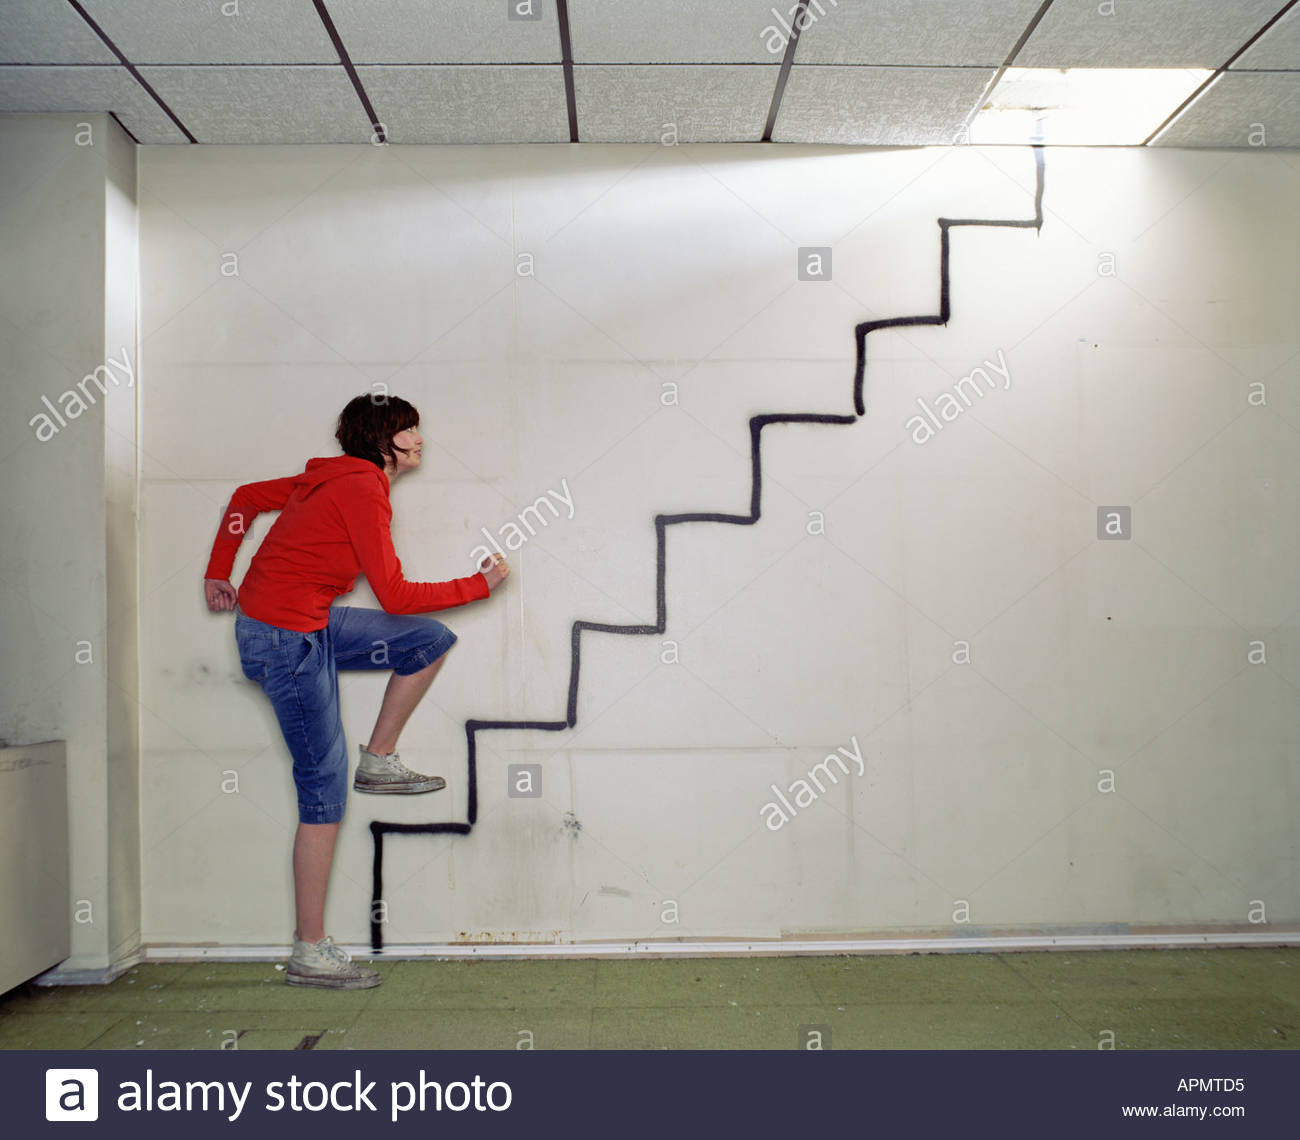 Woman walking up spray painted stairway - Stock Image